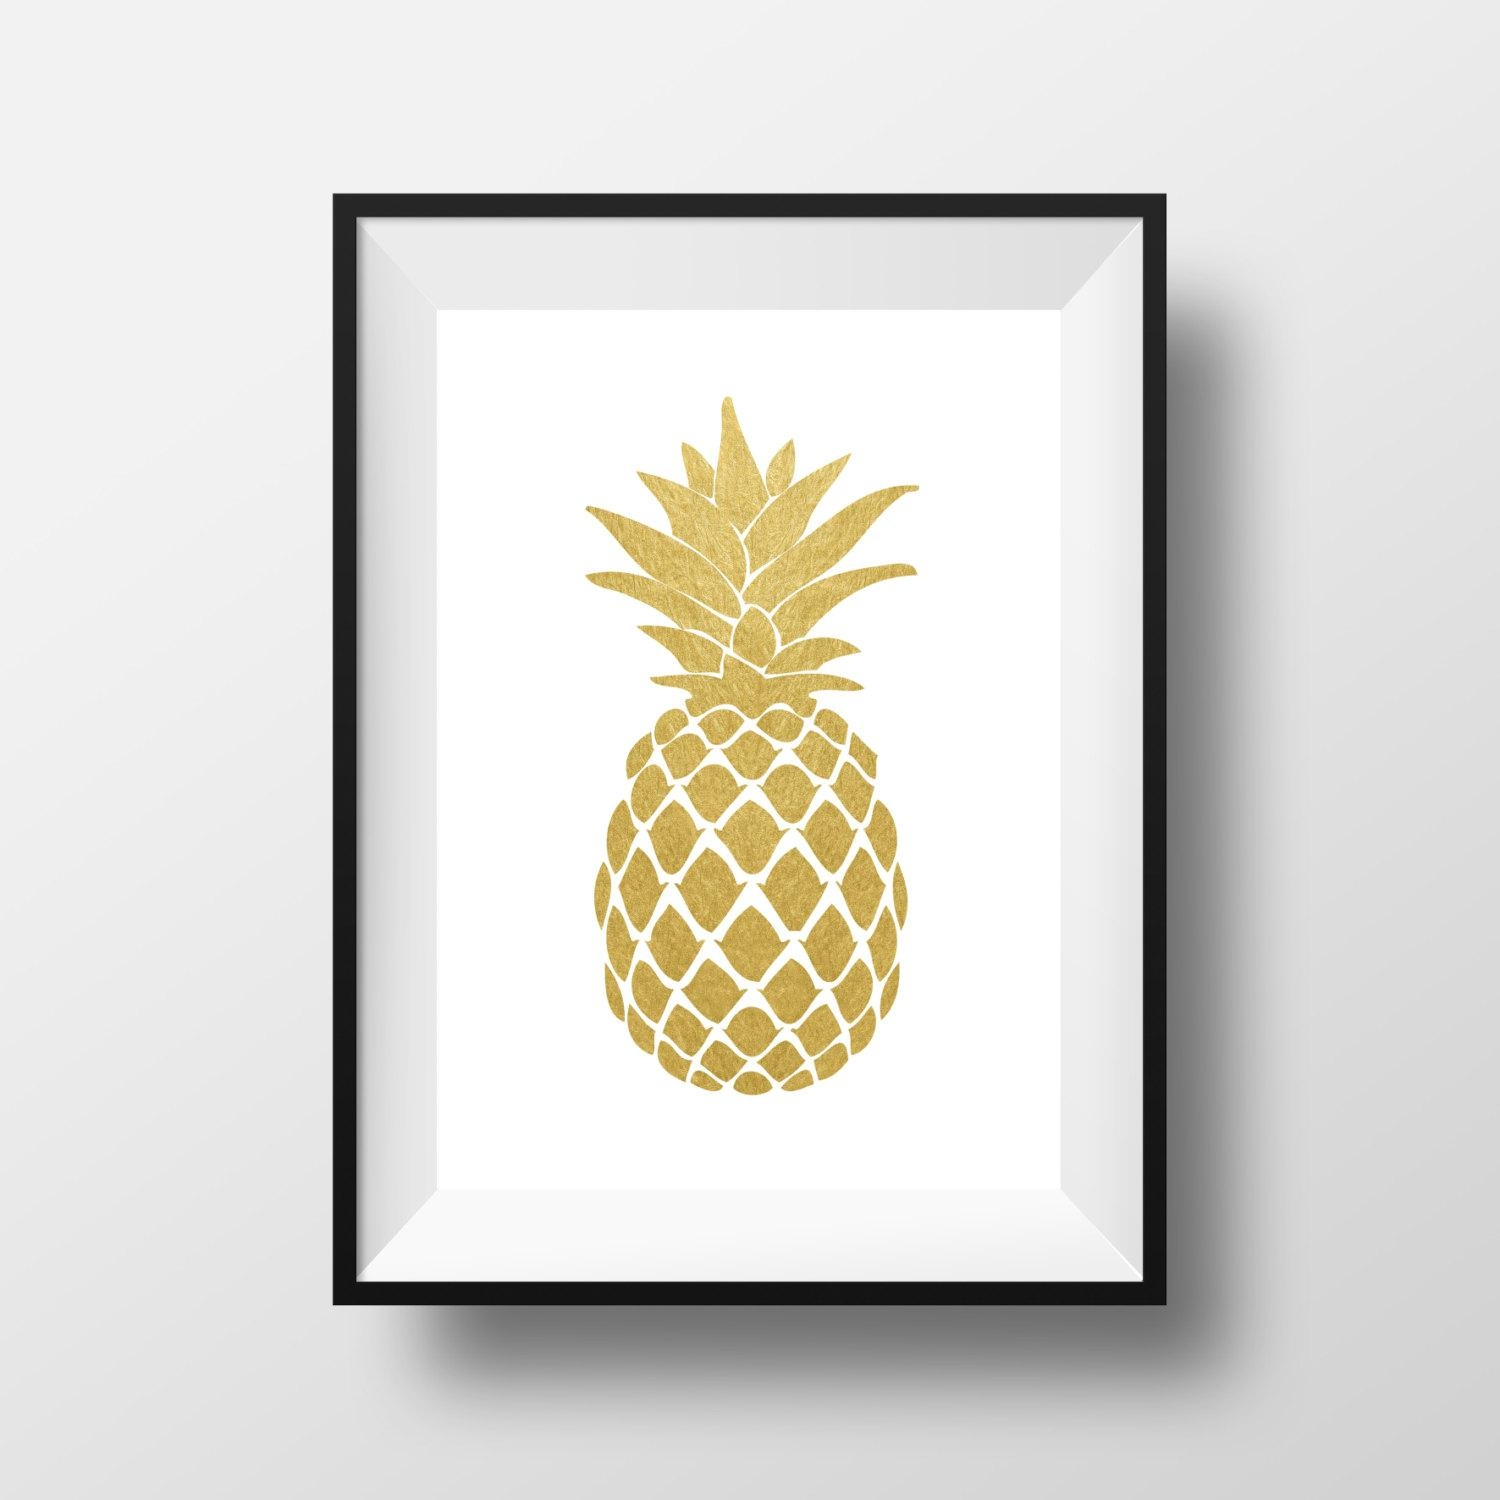 Wall Art Design Ideas: Gold White Pineapple Wall Art Paper Black Intended For Pineapple Metal Wall Art (Image 16 of 20)